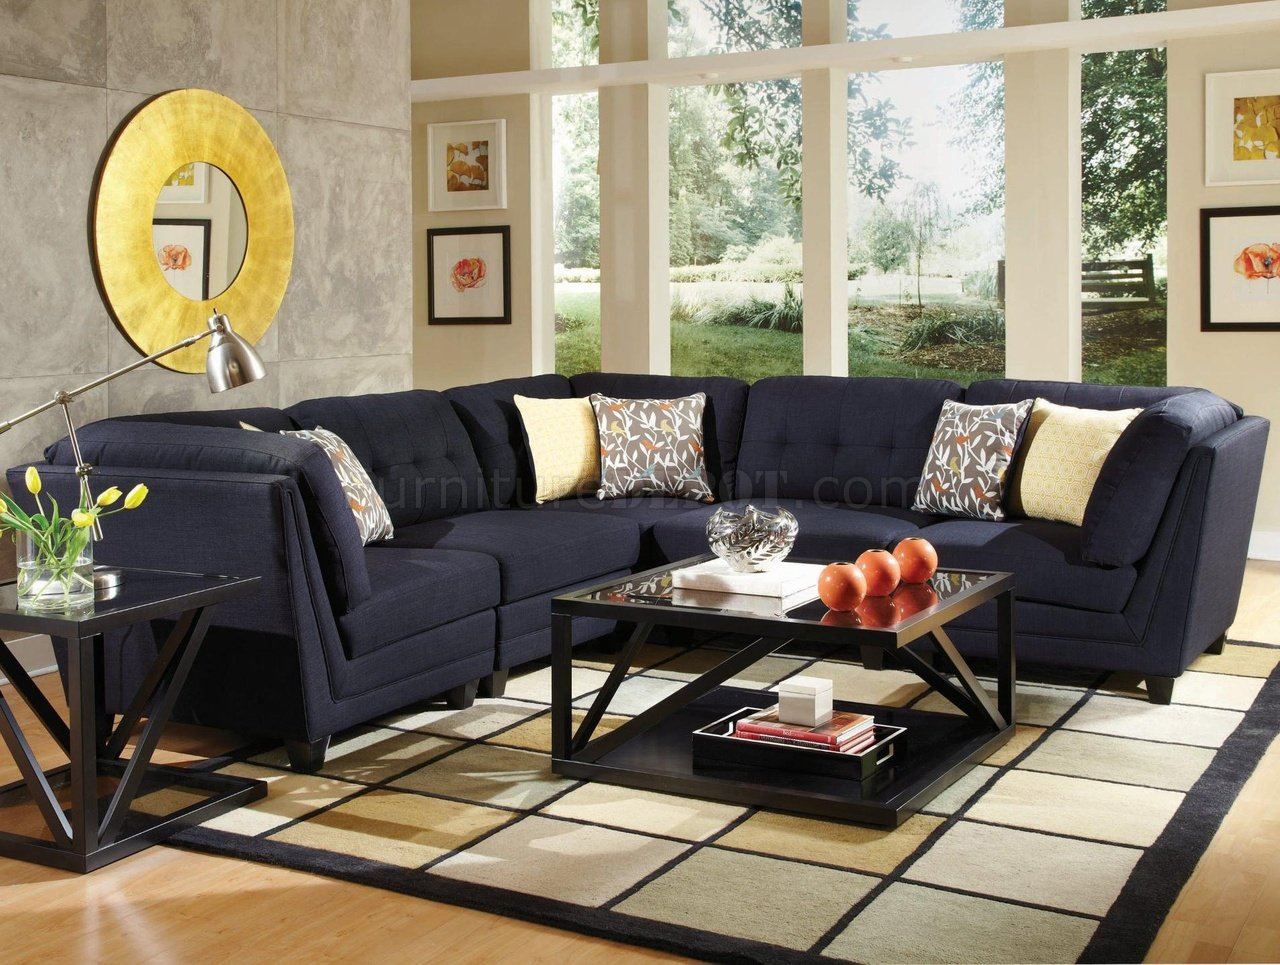 Keaton Sectional Sofa 5Pc 503451 By Coaster In Fabric